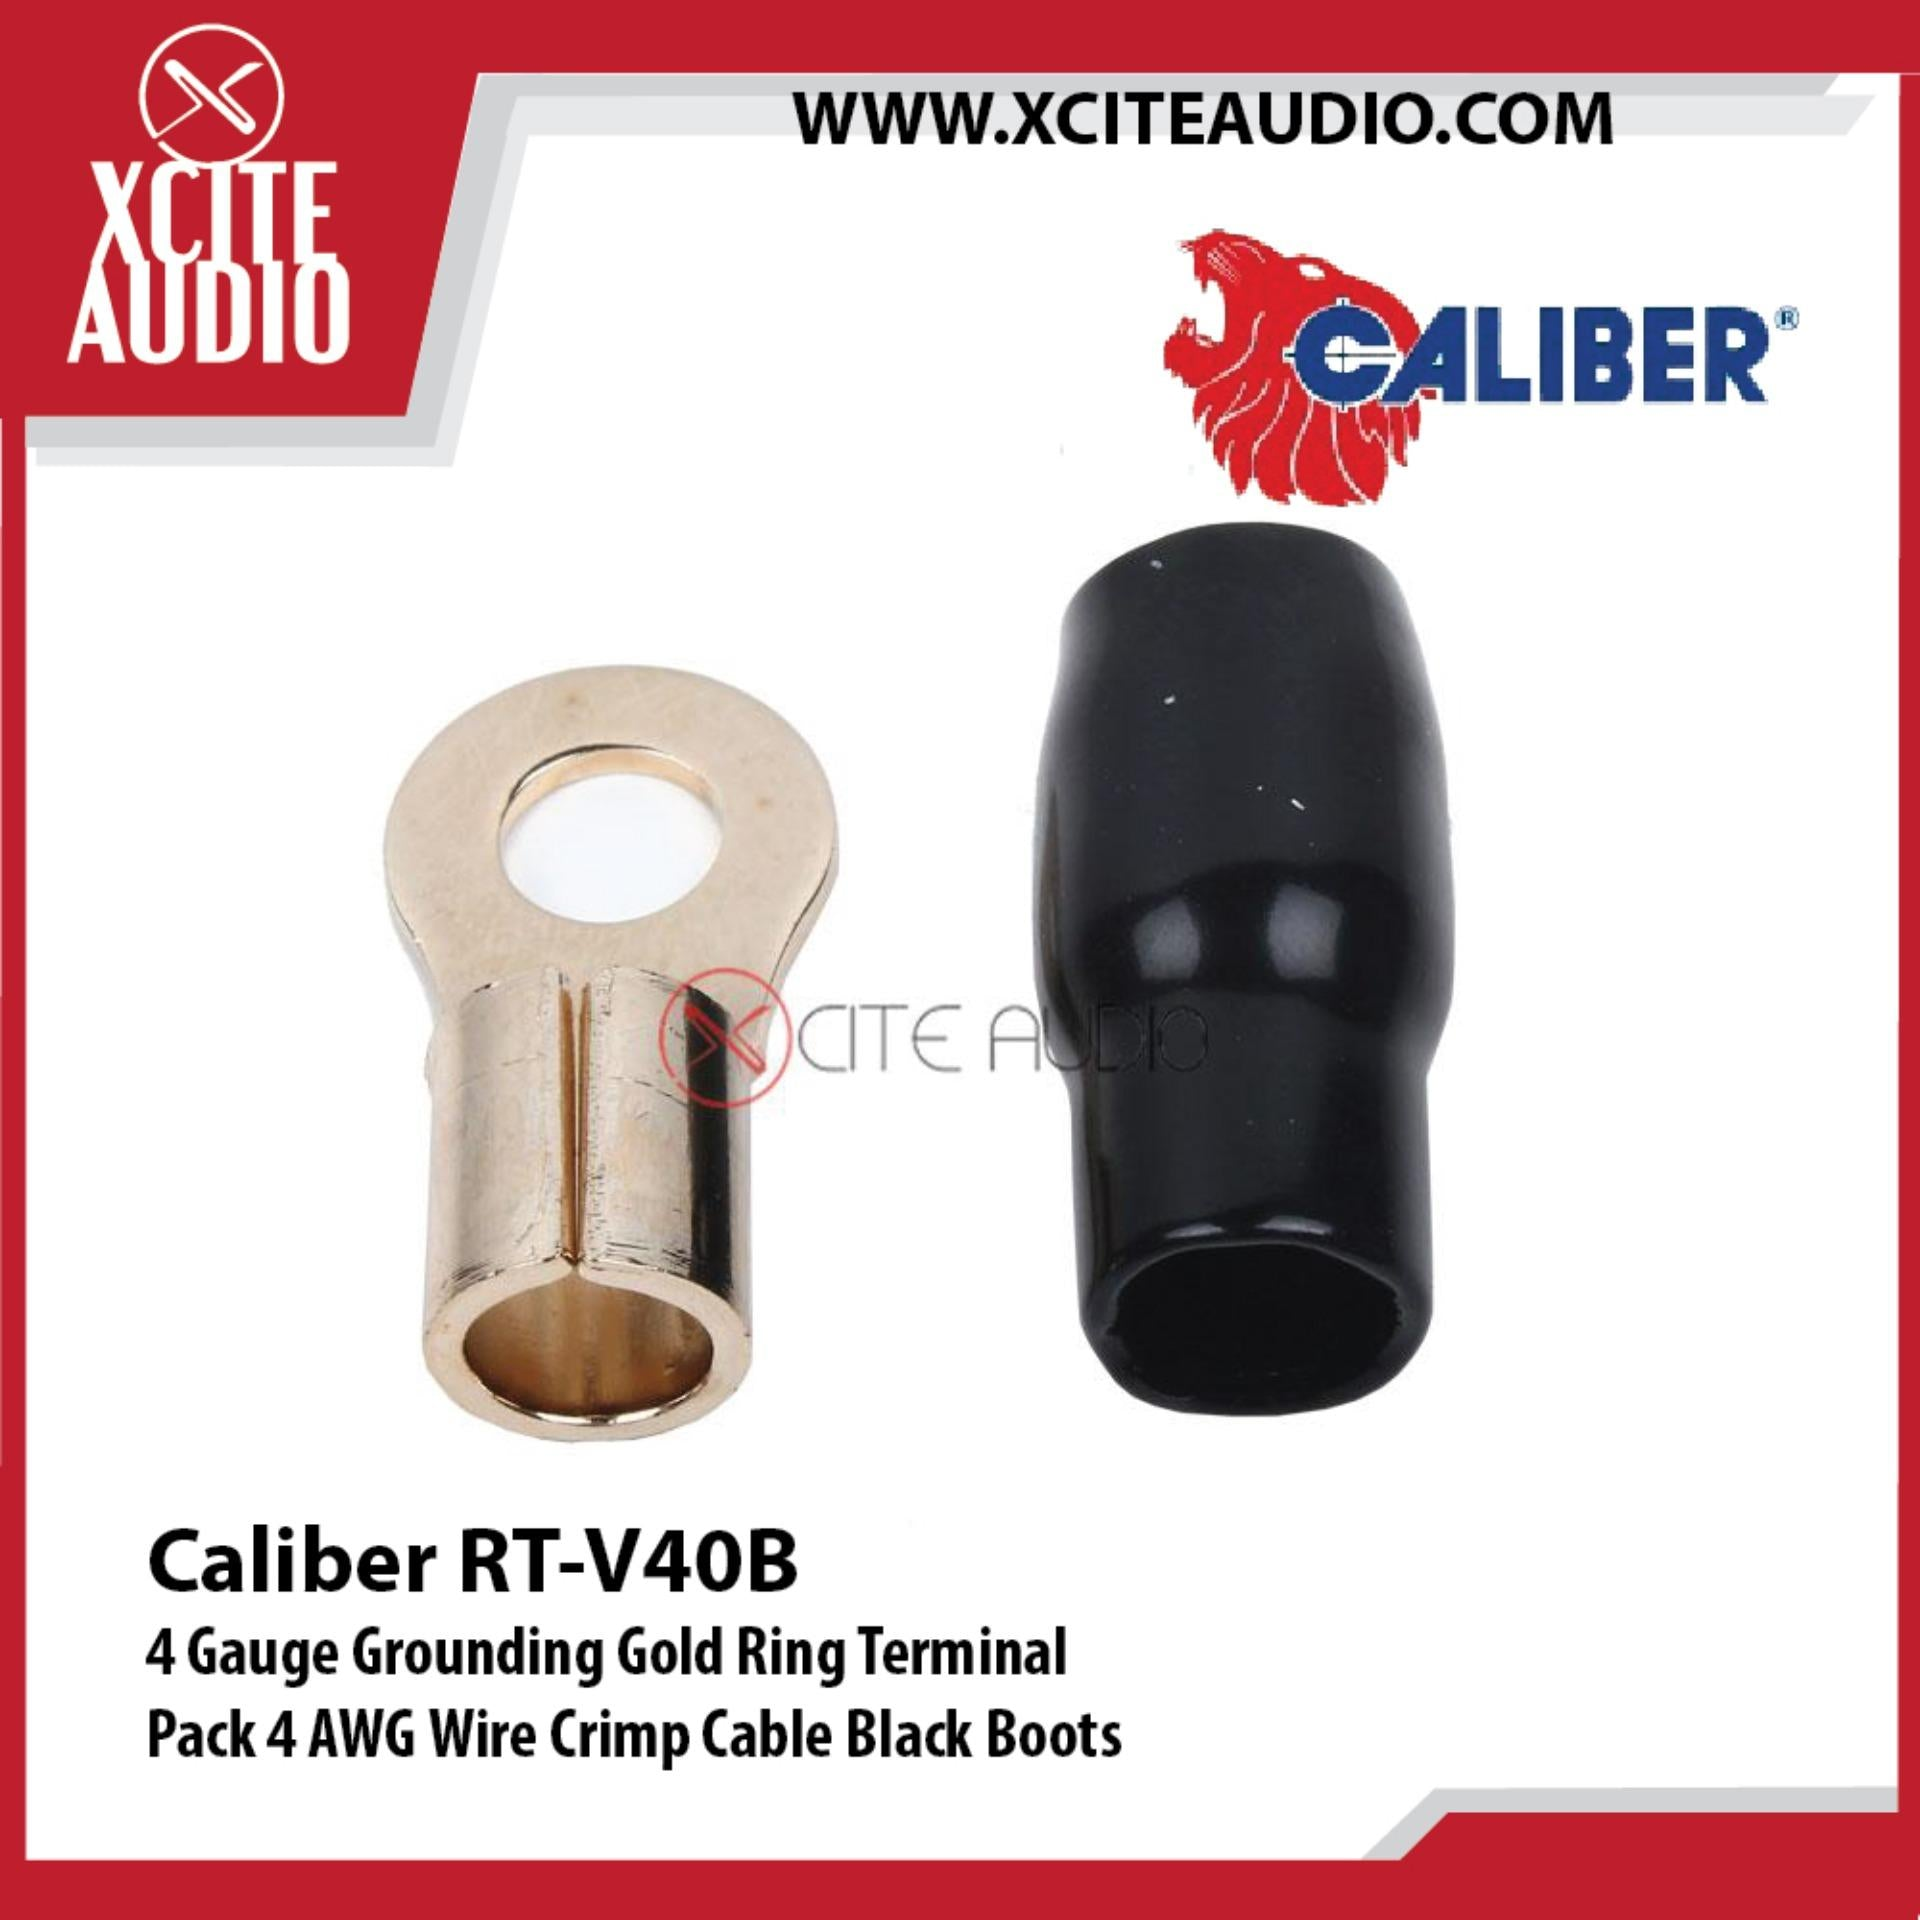 Caliber RT-V40B 4 Gauge Grounding Gold Ring Terminal 4 AWG Wire Crimp Cable Black Boots - Xcite Audio